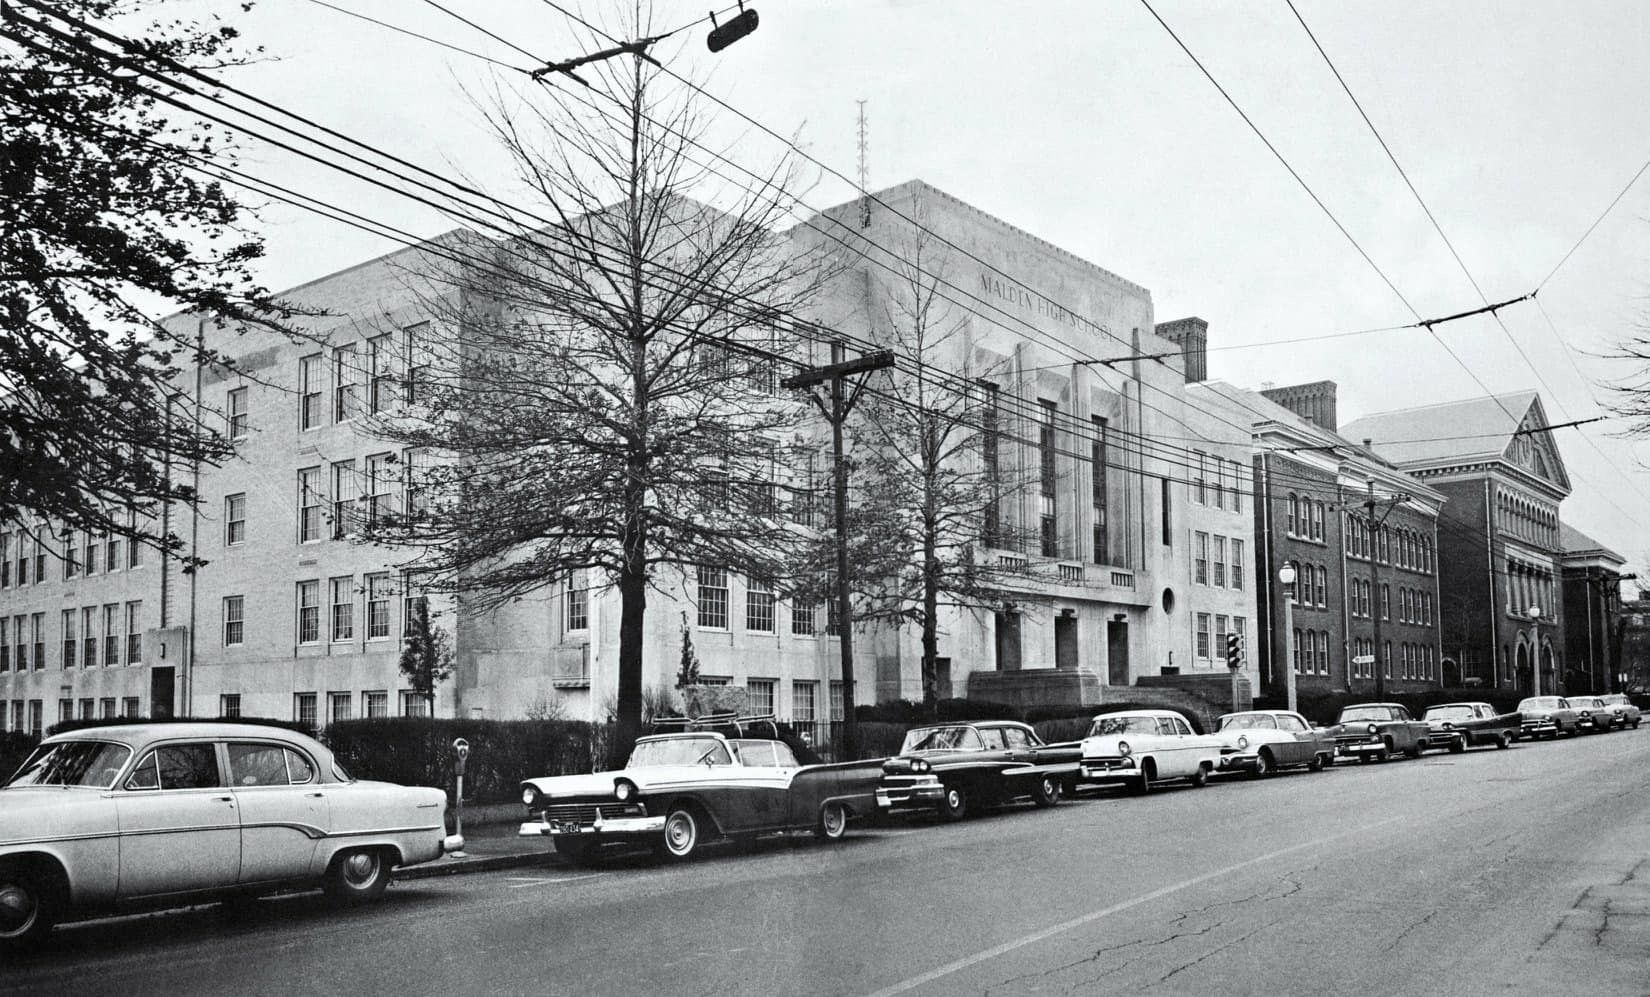 Malden High School 1950 S Malden Childhood Memories Scenes